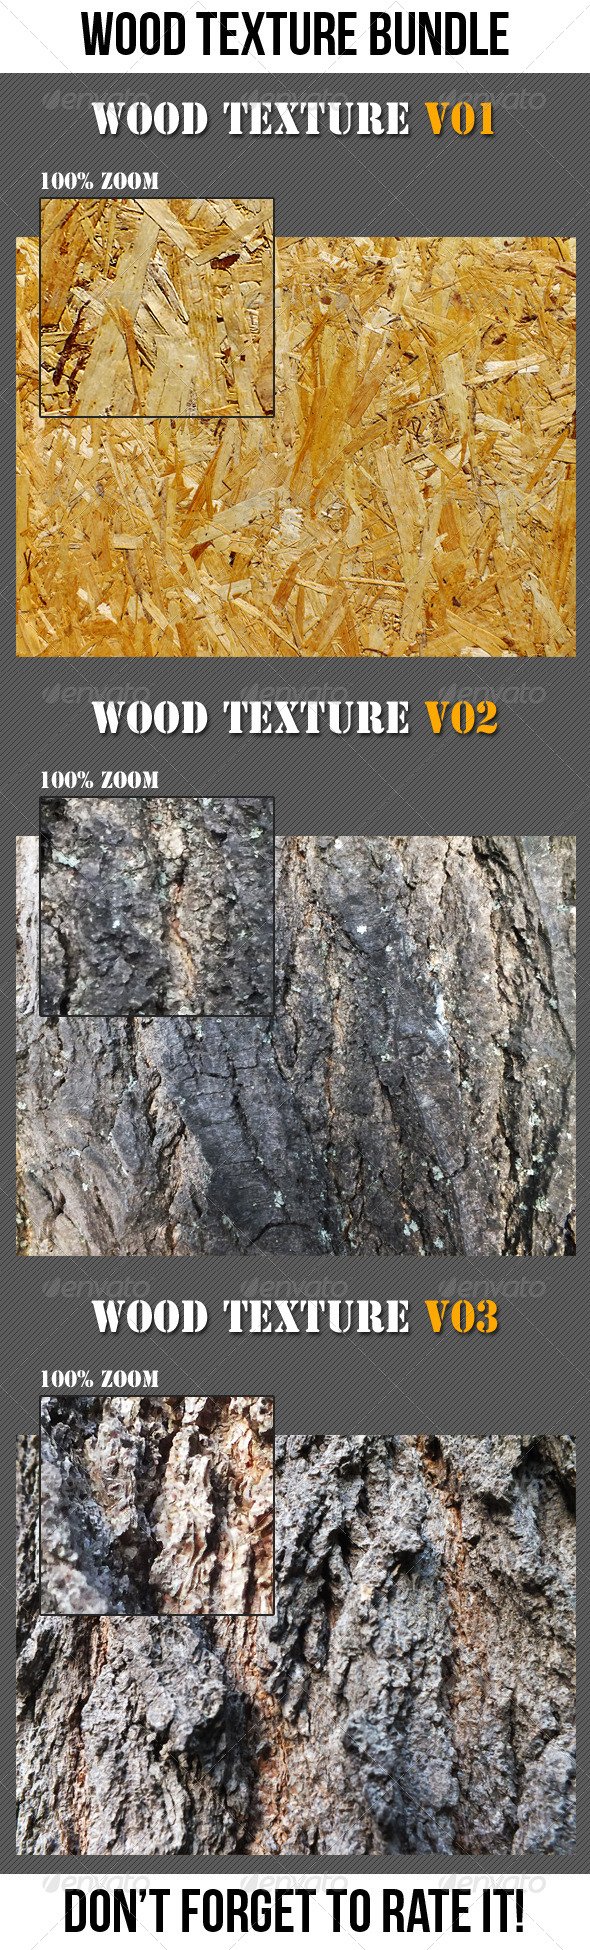 GraphicRiver Wood Texture Bundle 6767547